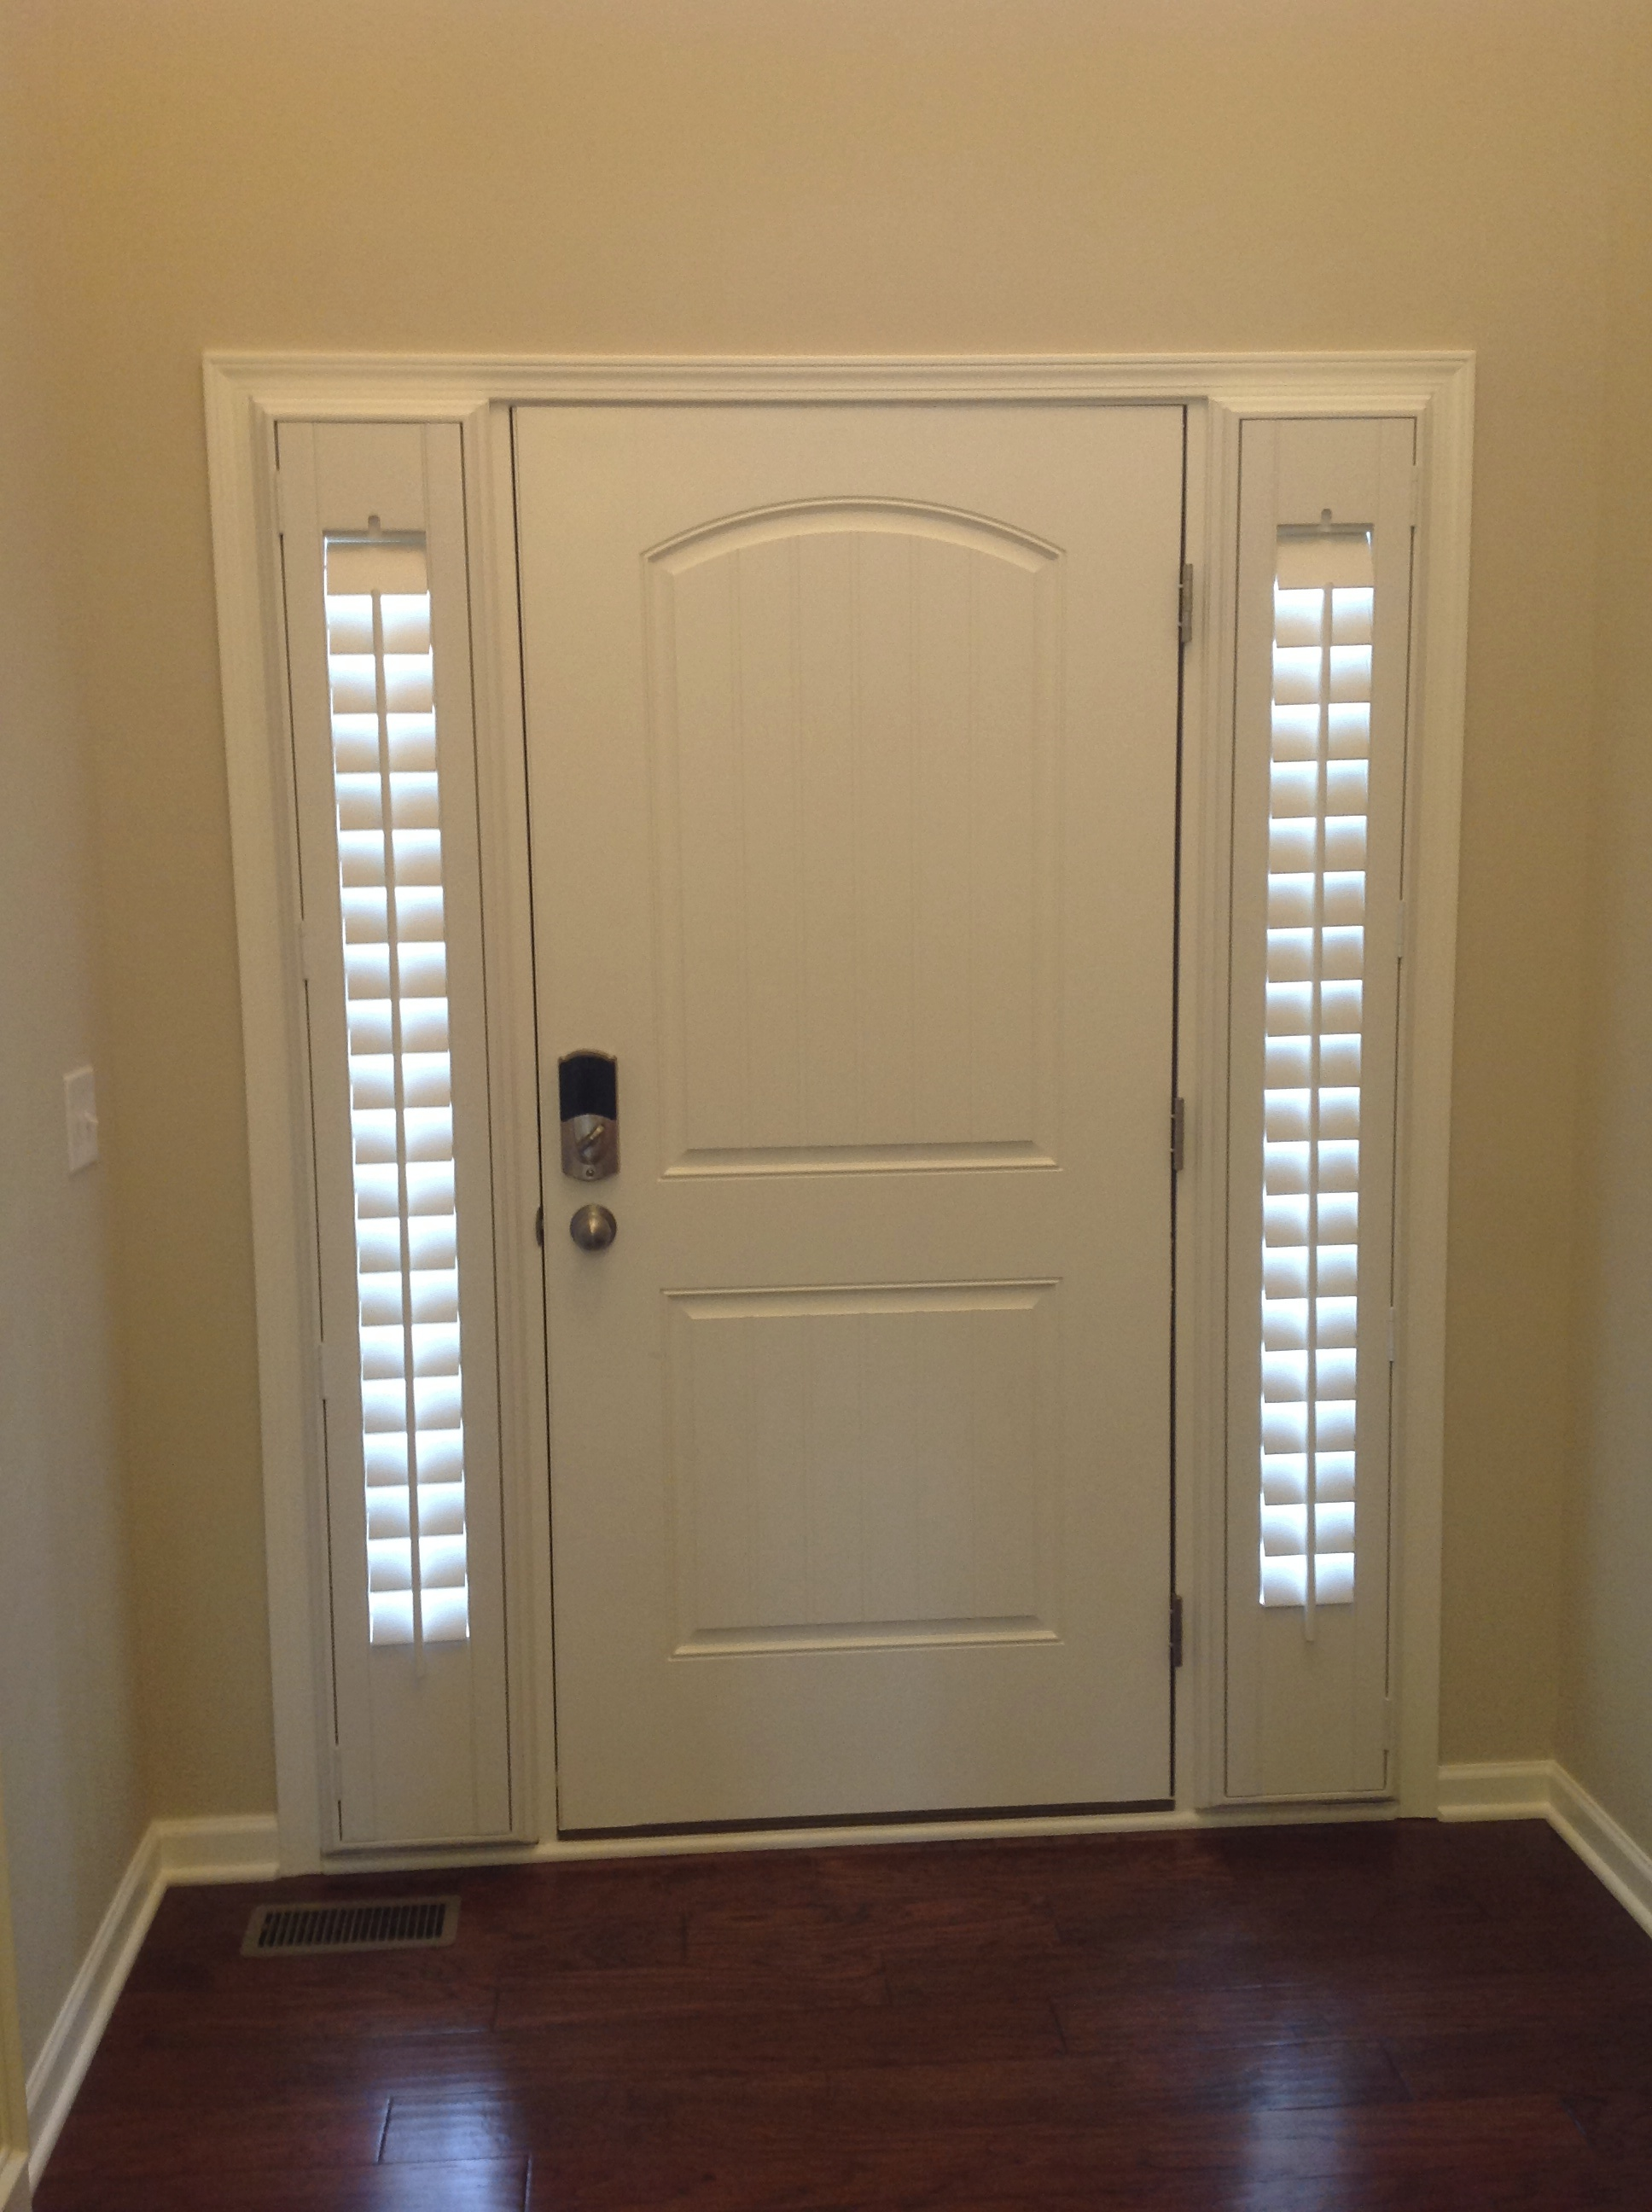 Entry door sidelight window shutters cleveland shutters for Door window shades blinds